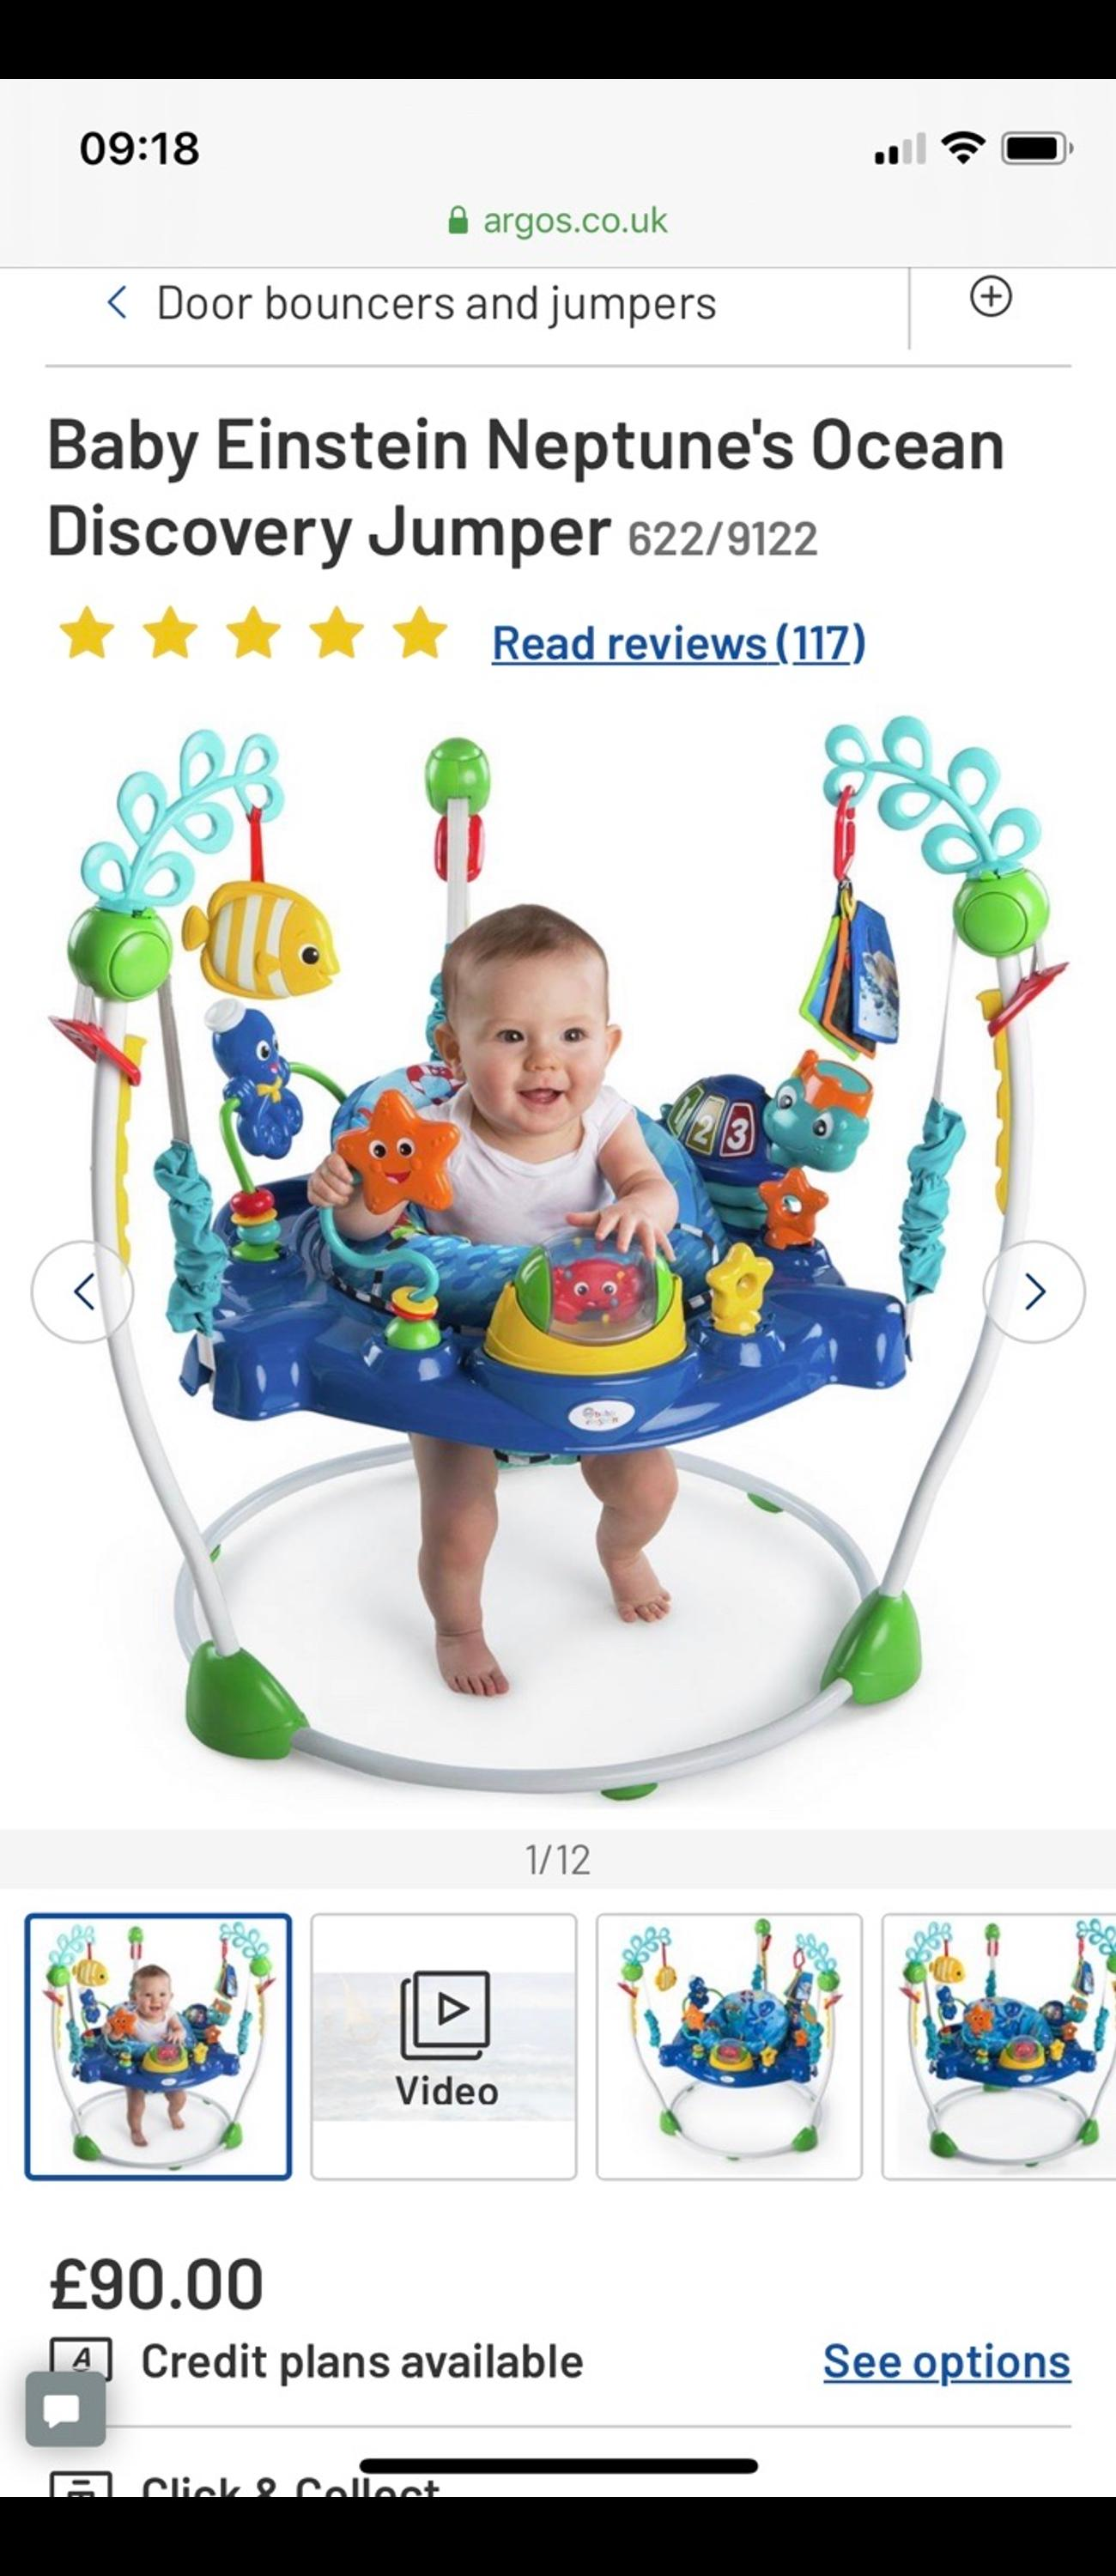 An ocean of activities in a space-saving design that easily adjusts to grow with your baby. Let Baby Neptune introduce your baby to a playtime filled with ocean-themed exploration. The Baby Neptune Jumper features an electronic turtle toy station that entertains your little one with lights, sounds, music and more. Your baby will discover numbers and colours in three languages - English, French and Spanish.  Removable electronic turtle station with lights, sounds, and language discovery introduce